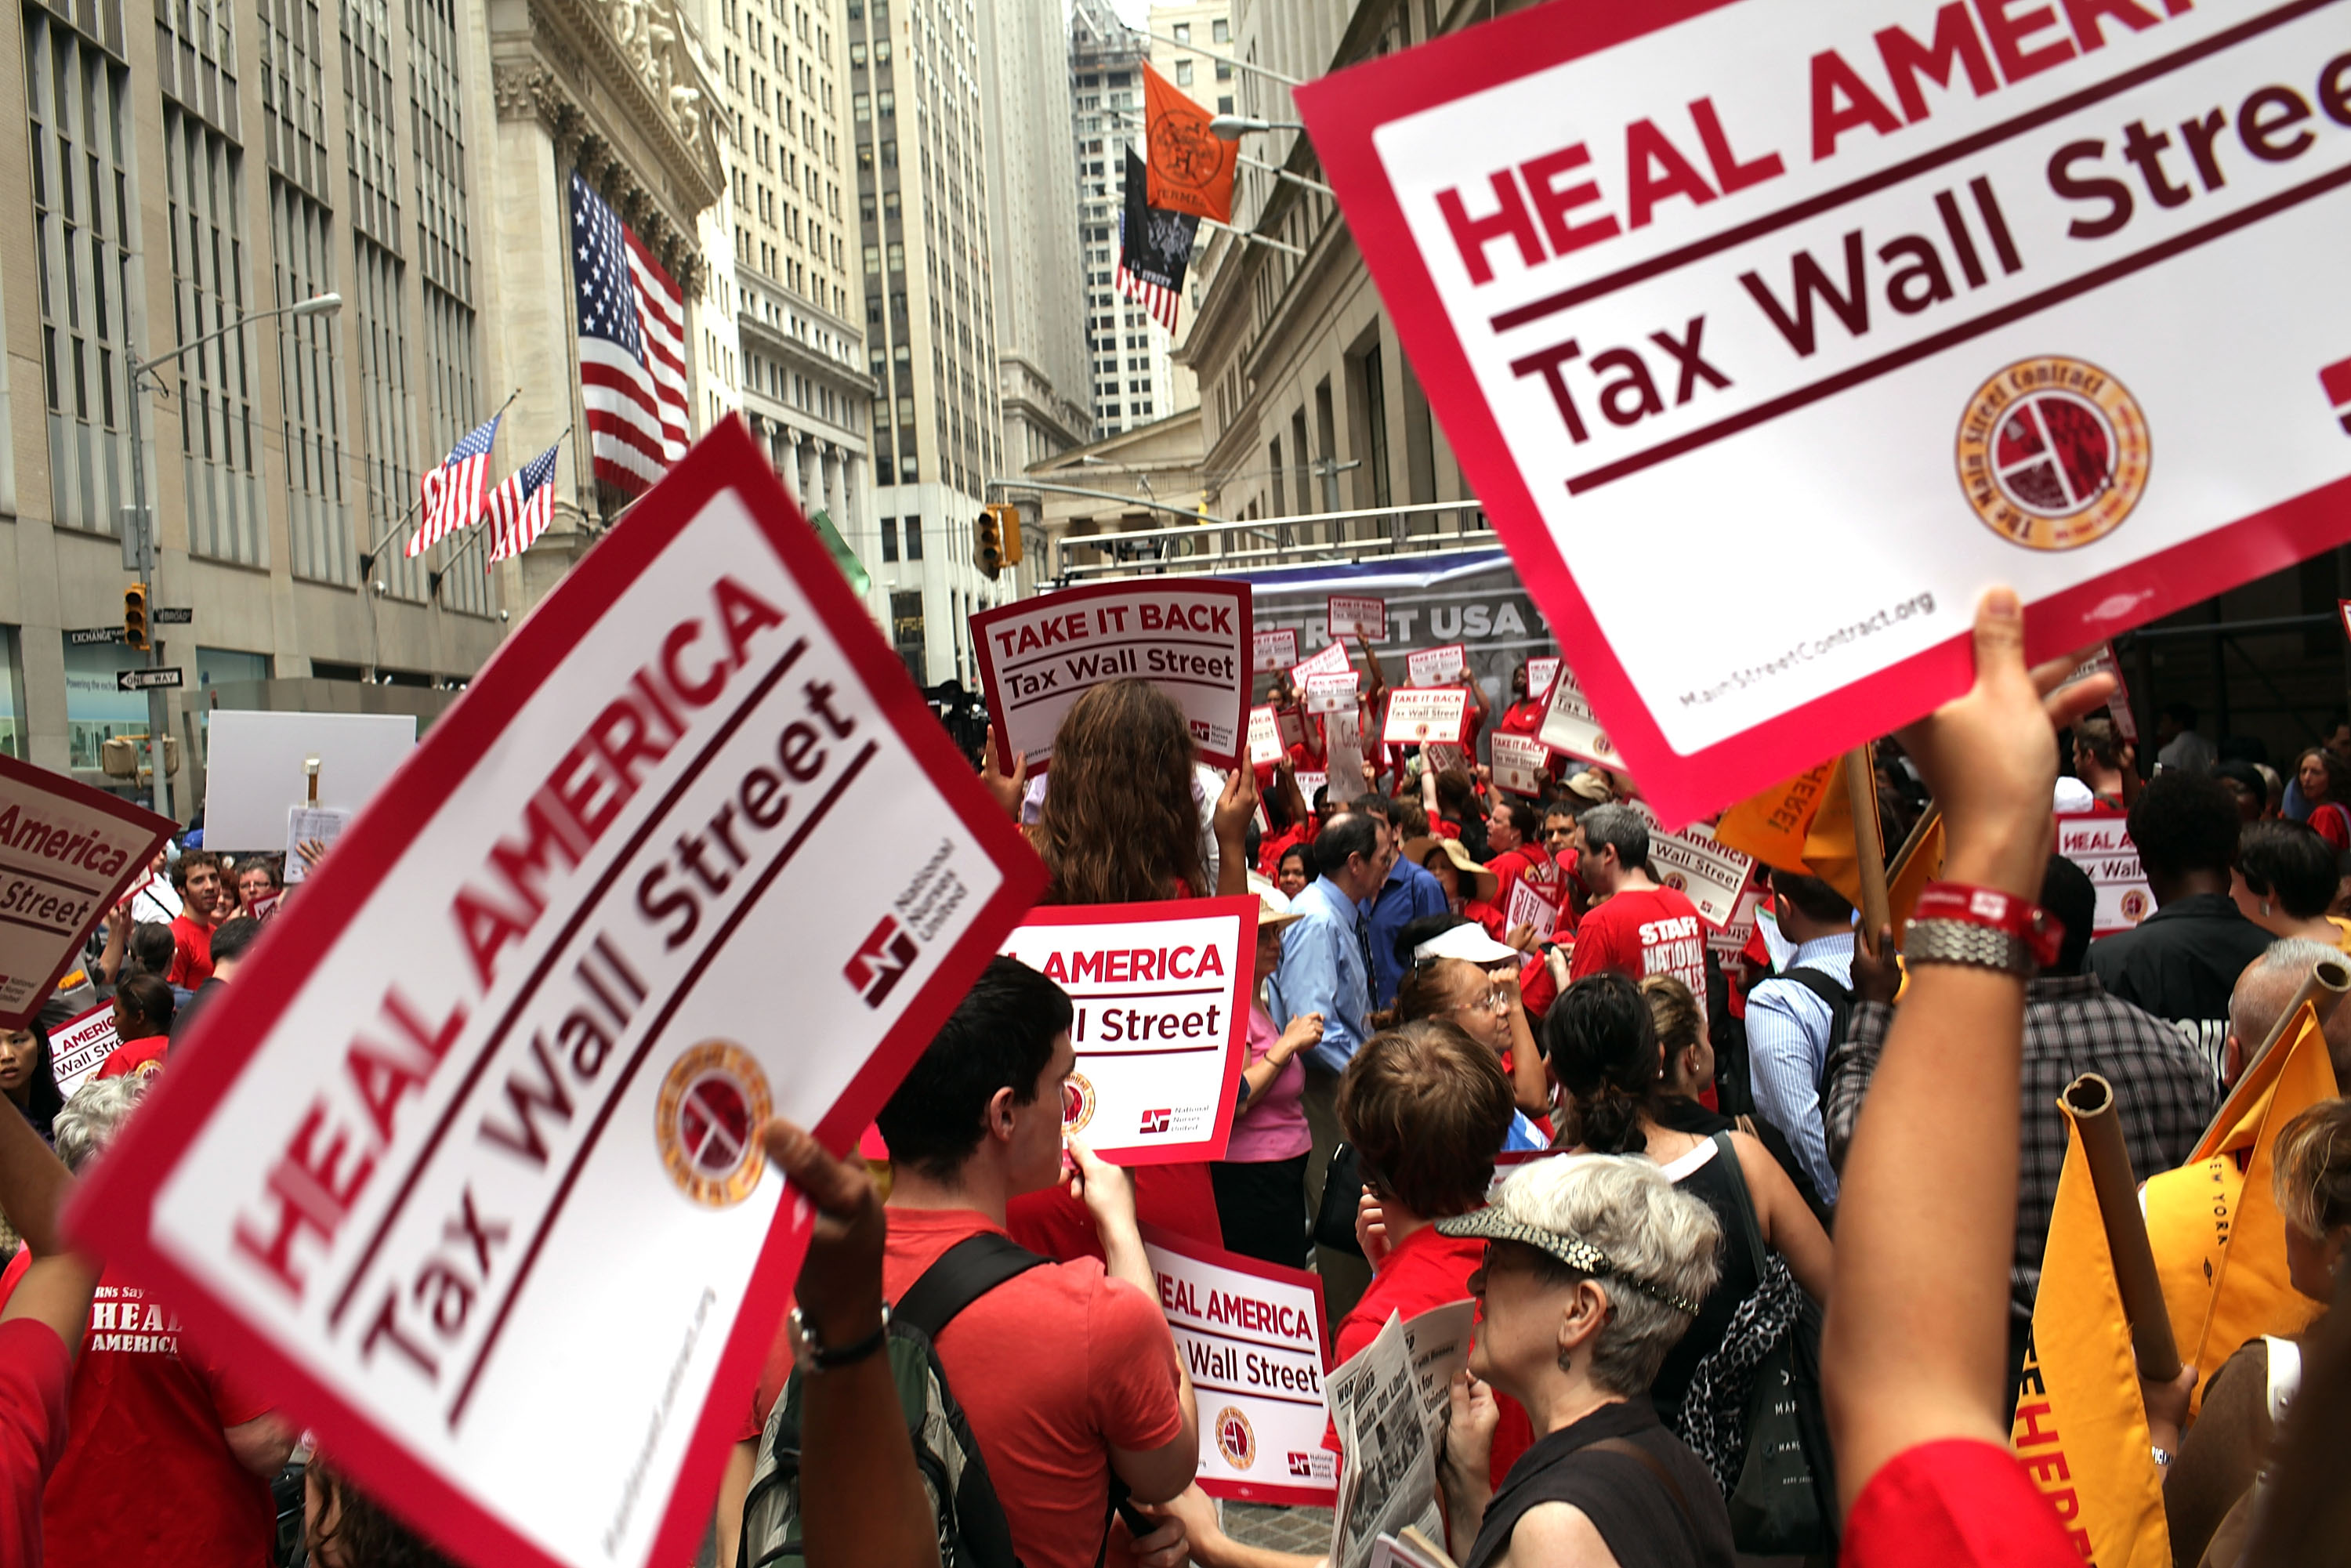 Members of the nurses union, National Nurses United, and other workers converge on Wall Street to protest against financial intuitions and inequality on June 22, 2011 in New York City.